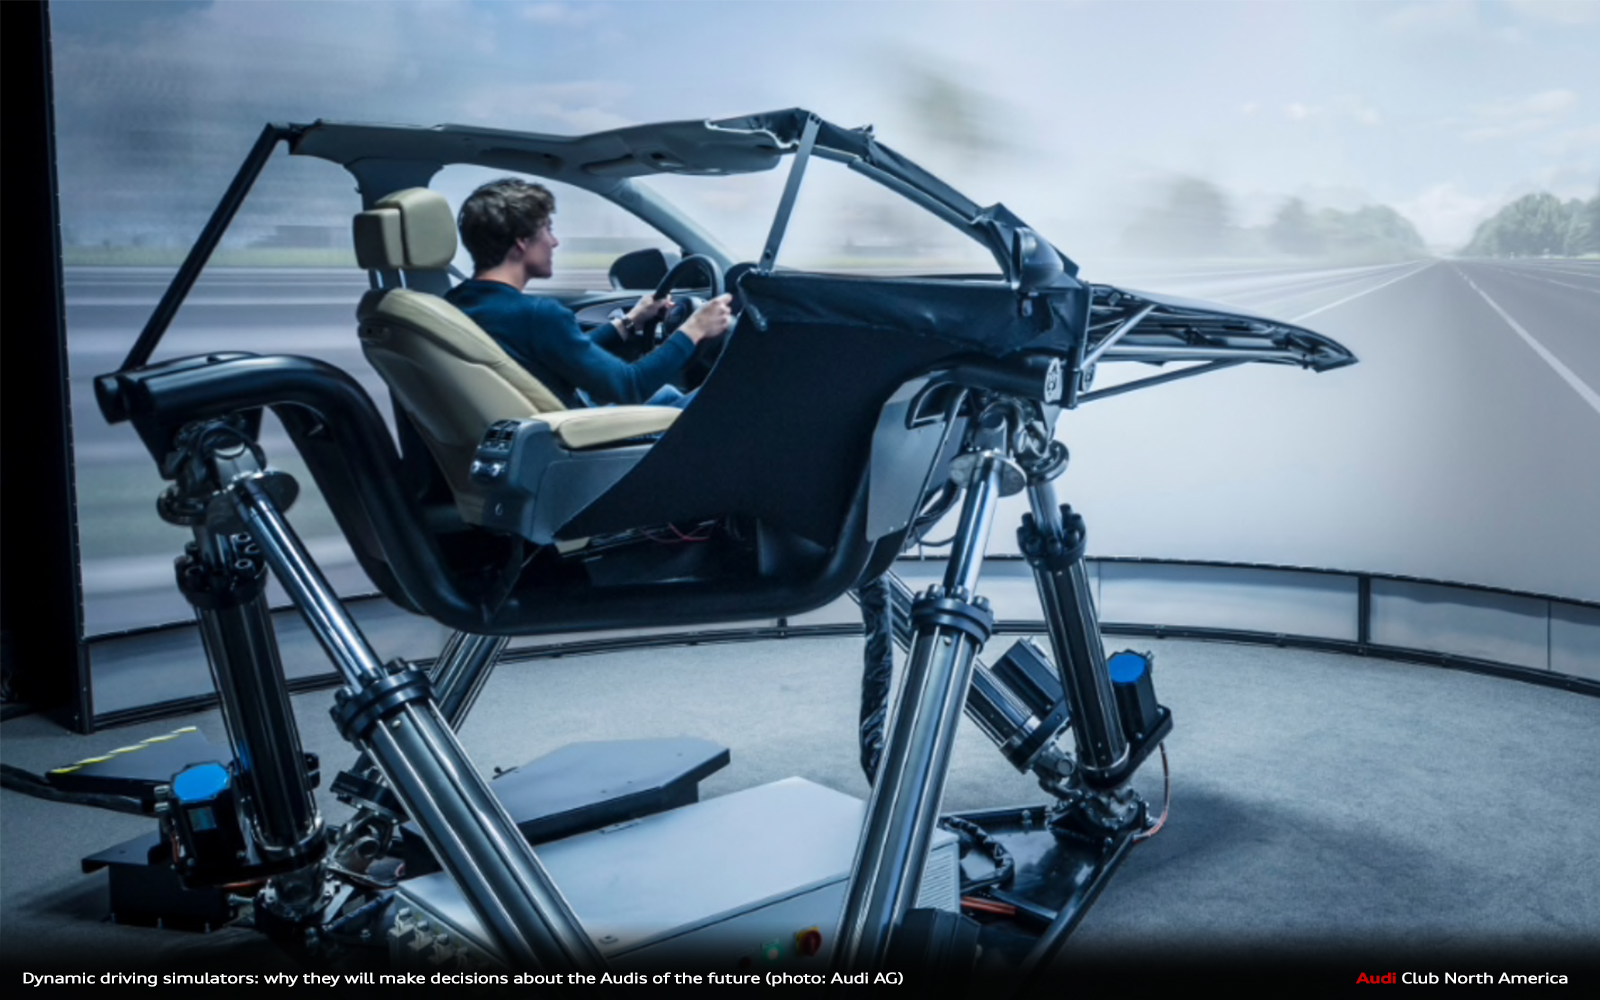 Dynamic Driving Simulators: Why They Will Make Decisions About The Audis Of The Future